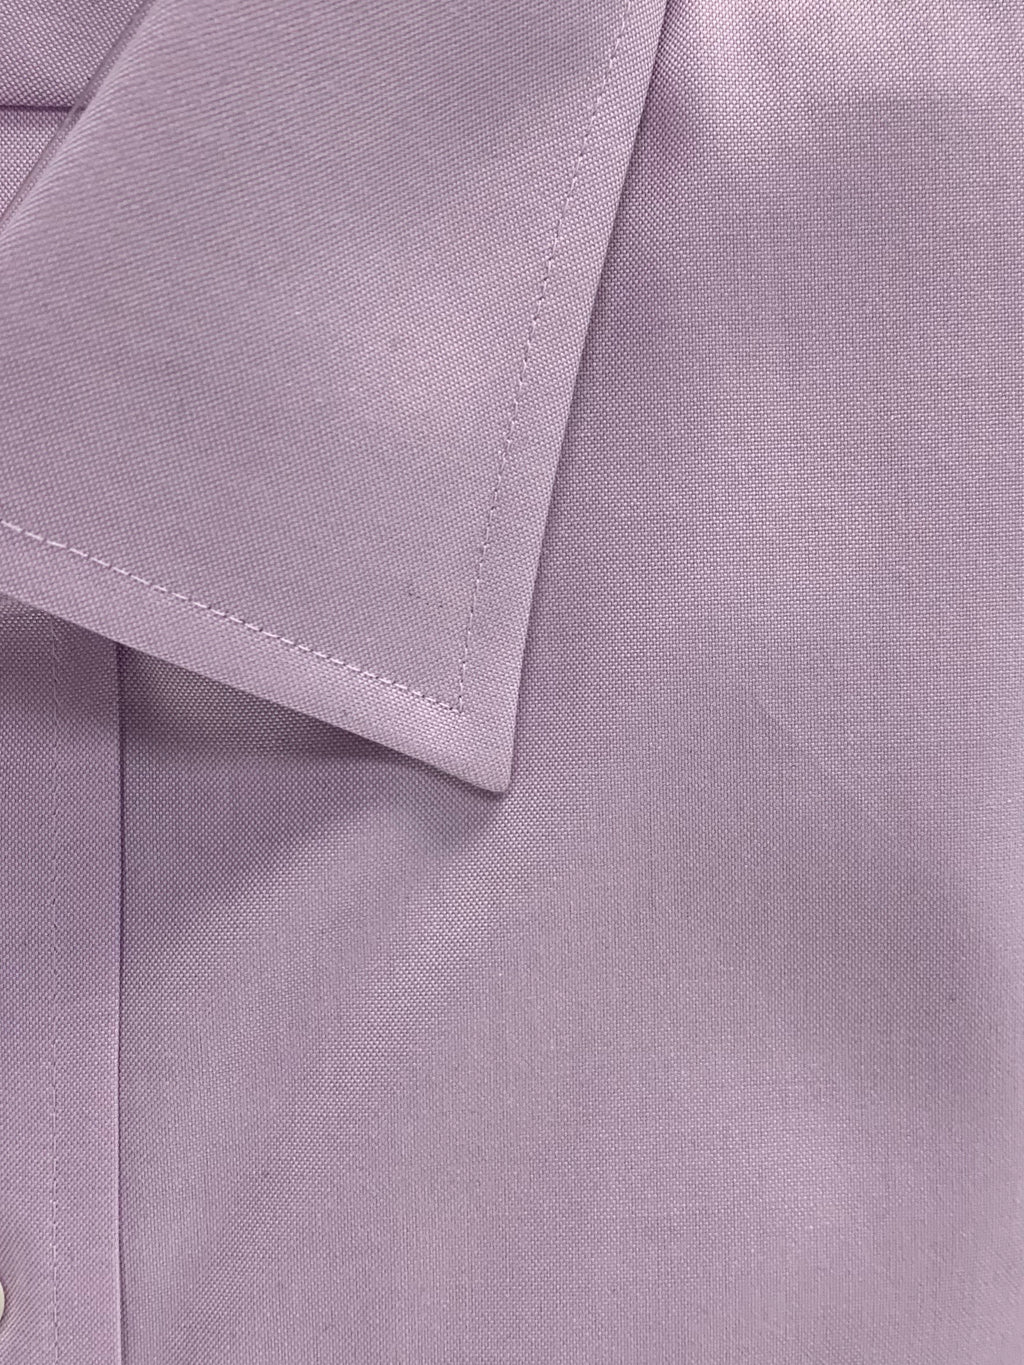 Giovanni's Modified Spread Dress Shirt - Lavendar-51